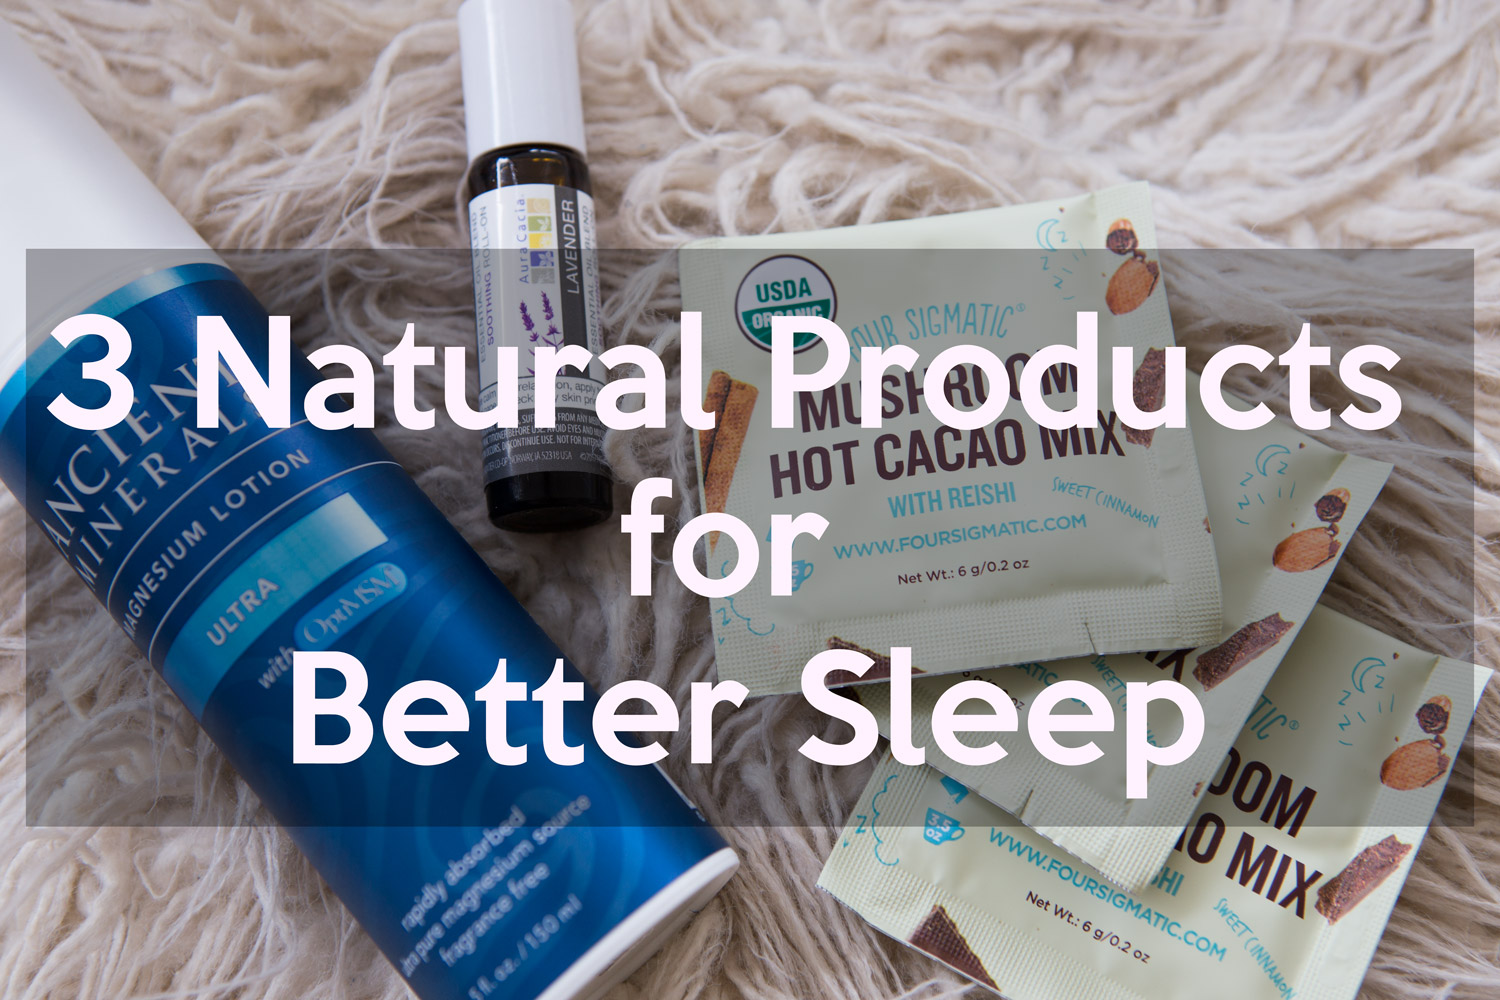 Three tried and true favorites for a better night's sleep